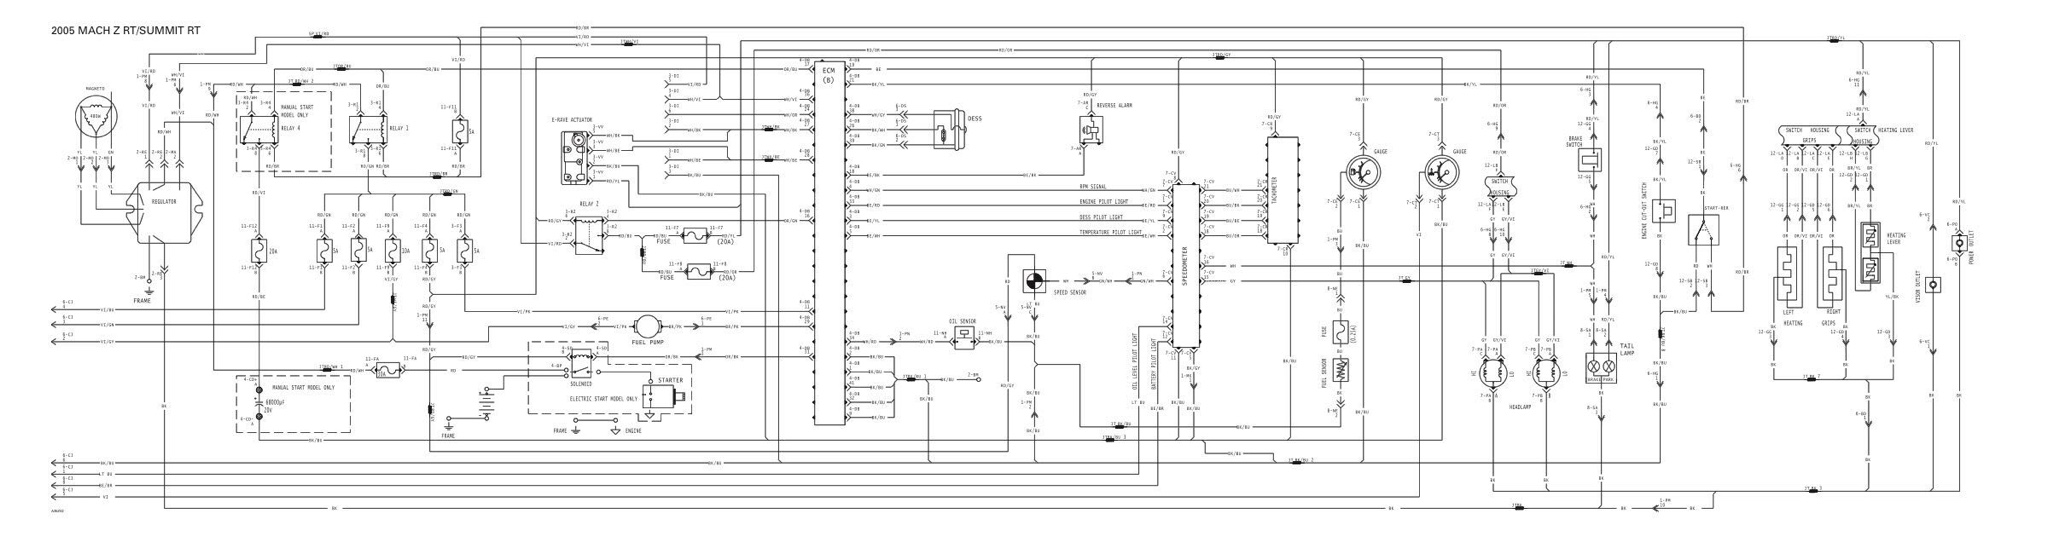 Wiring Diagram 2006 Mach Z 1998 Ski Doo 1000 Sdi Rt And Mxz Models Rh Dootalk